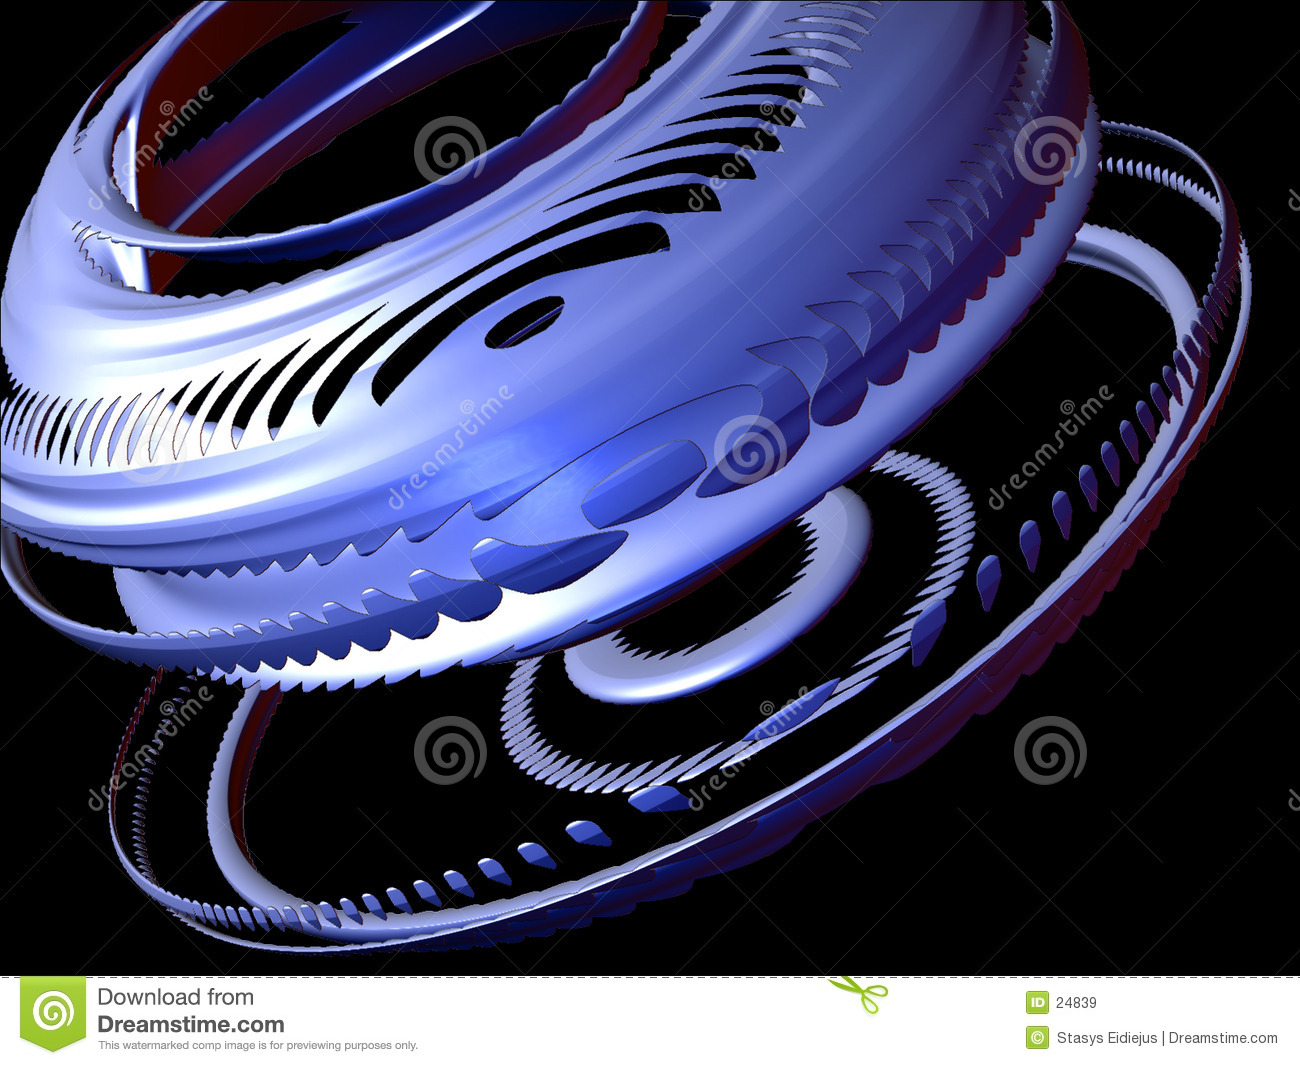 Abstract design elements 3D, Set I, detail 3